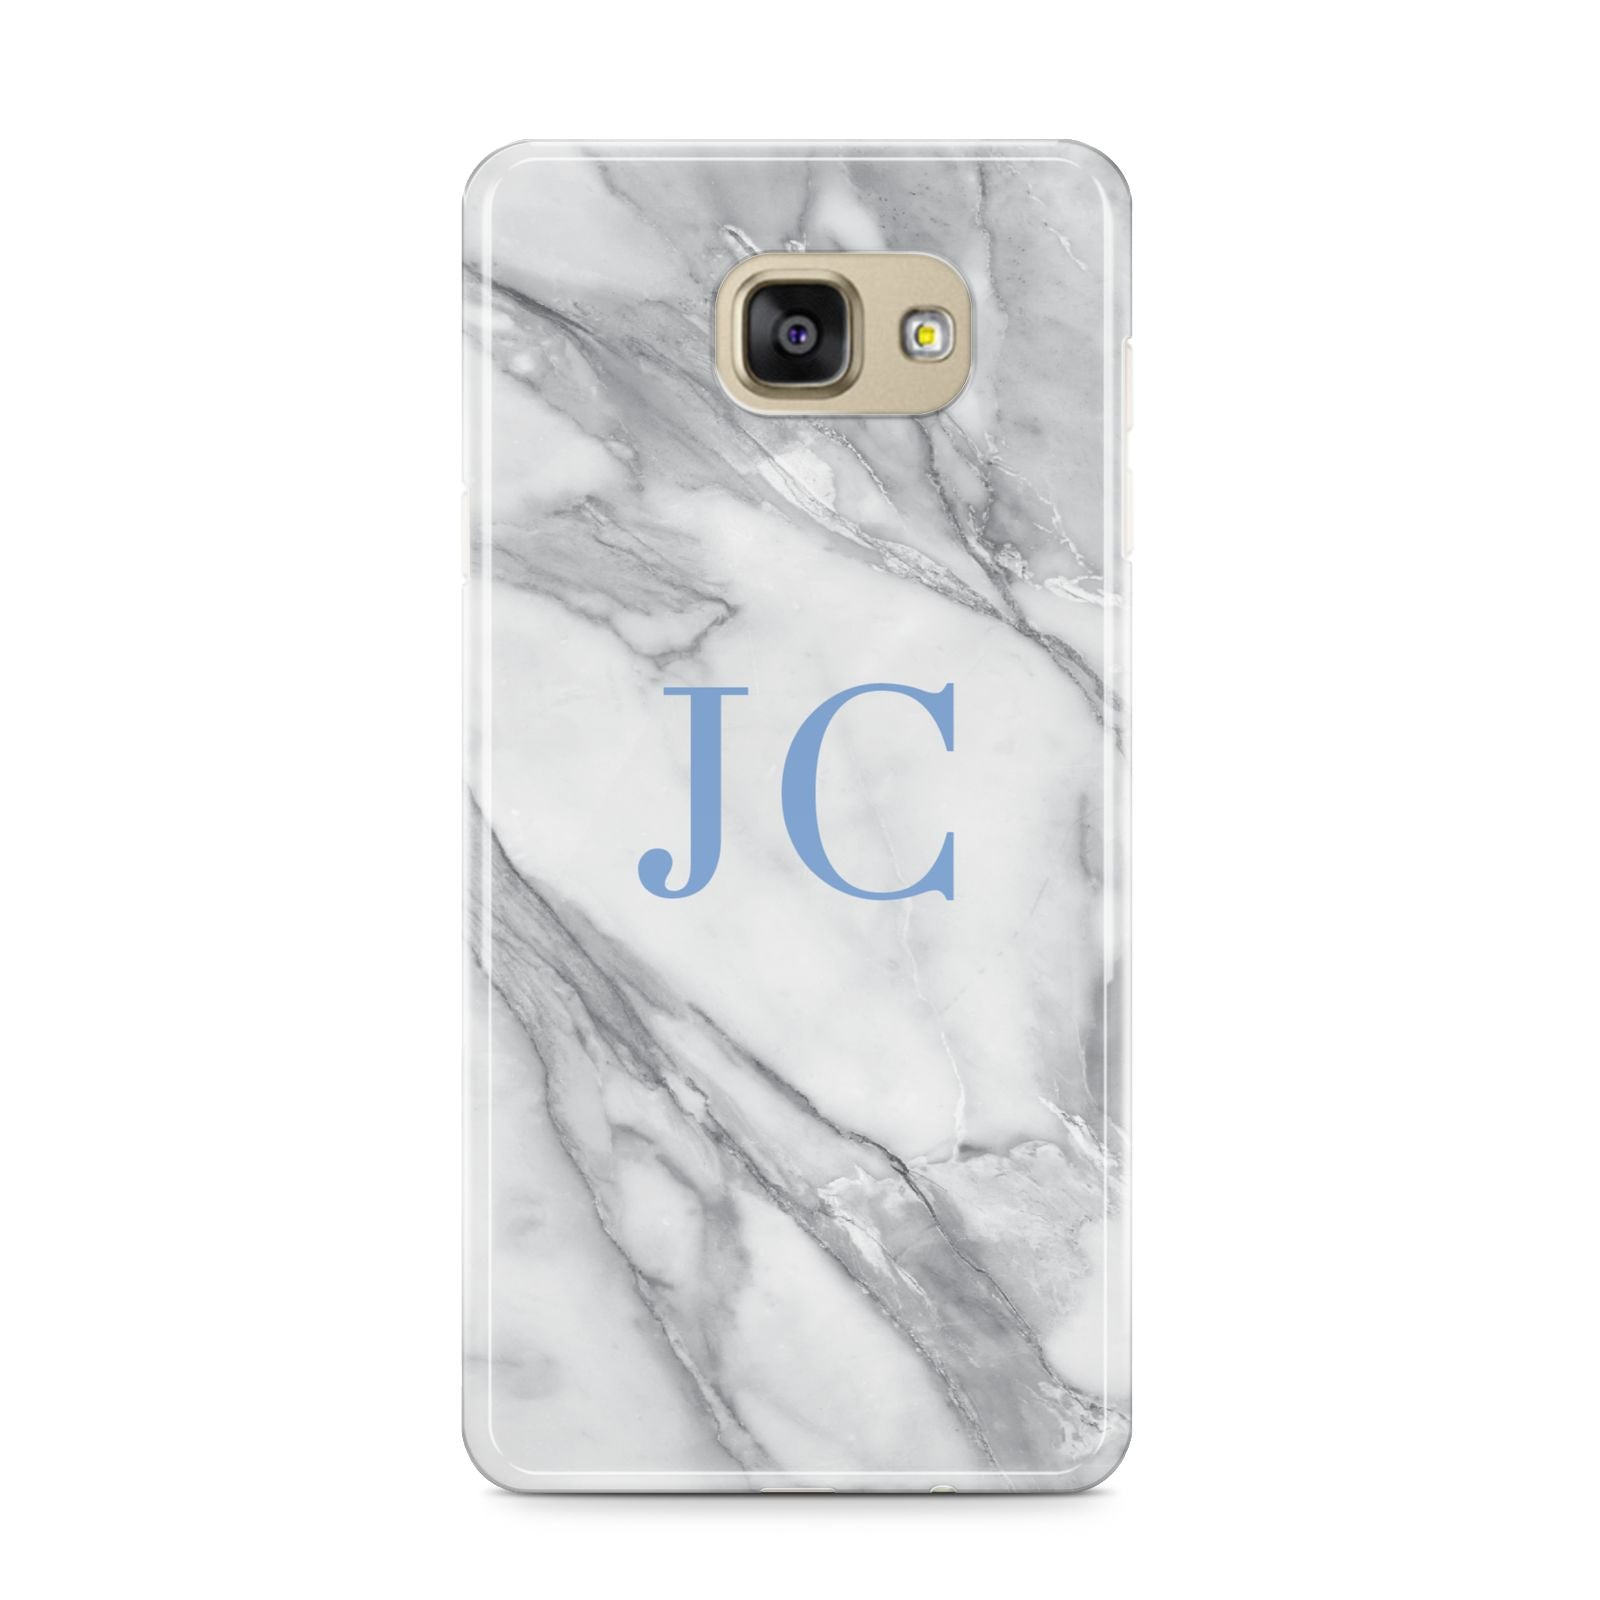 Grey Marble Blue Initials Samsung Galaxy A9 2016 Case on gold phone